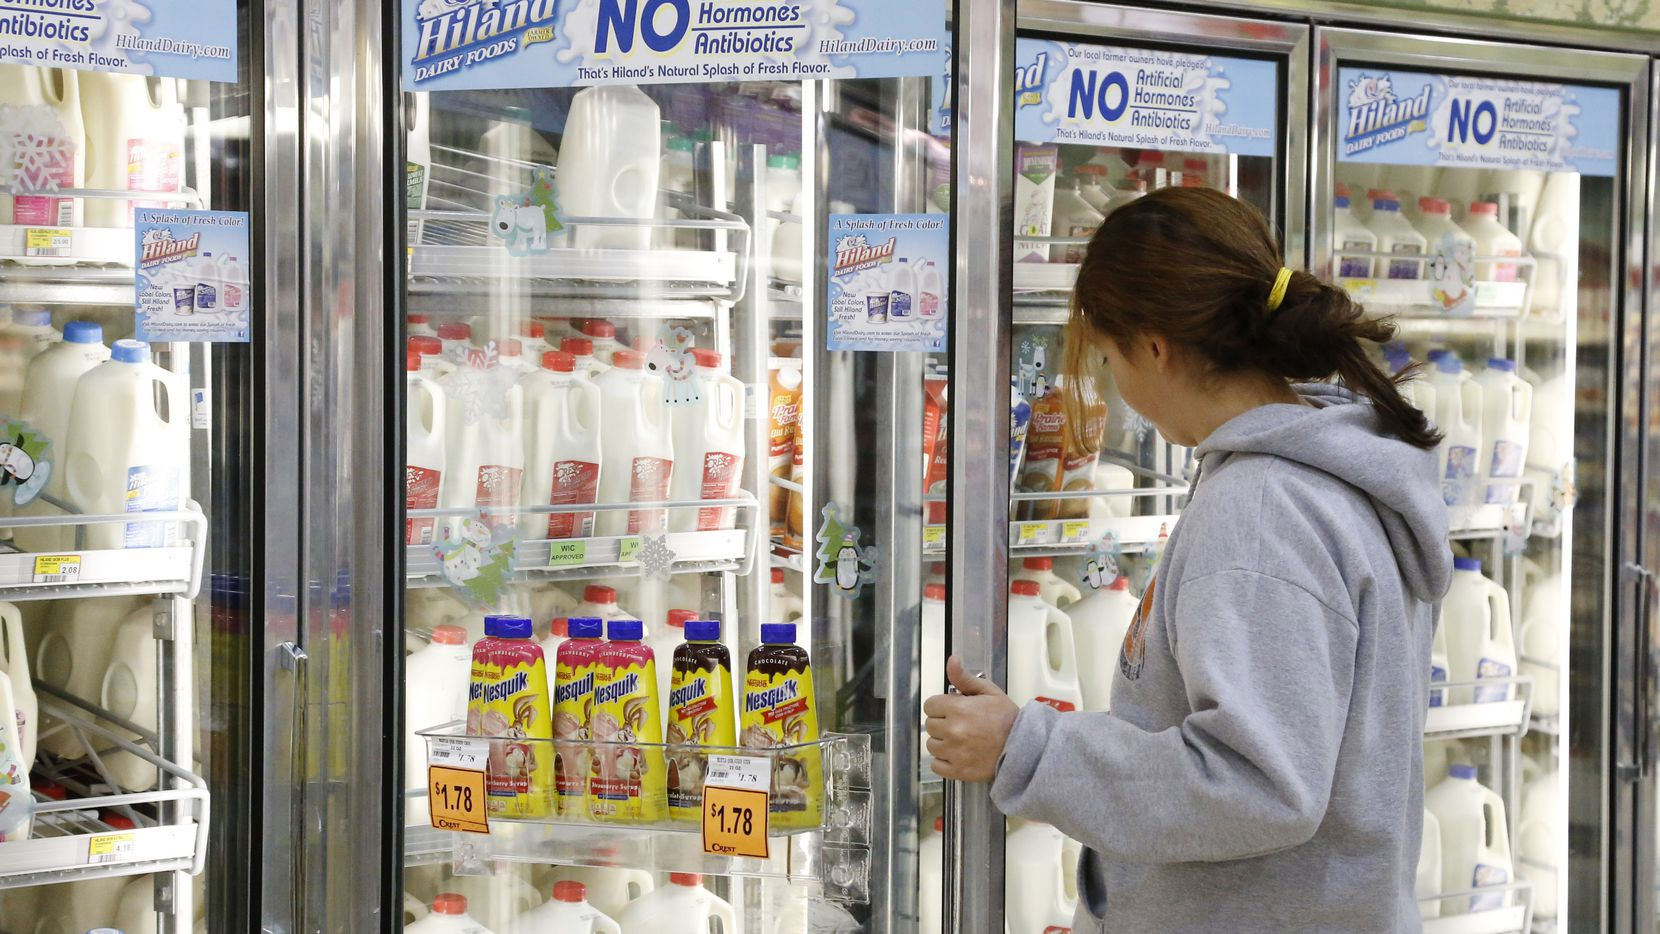 FILE - In this Dec. 4, 2013, file photo Jessica Walton, of Guthrie, Okla., reaches for a container of milk at a grocery store in Edmond, Okla. On Tuesday, Nov. 12, 2019, Dean Foods, the nation's largest milk processor, filed for Chapter 11 bankruptcy protection and said it may sell the company off to the Dairy Farmers of America. (AP Photo/Sue Ogrocki, File)